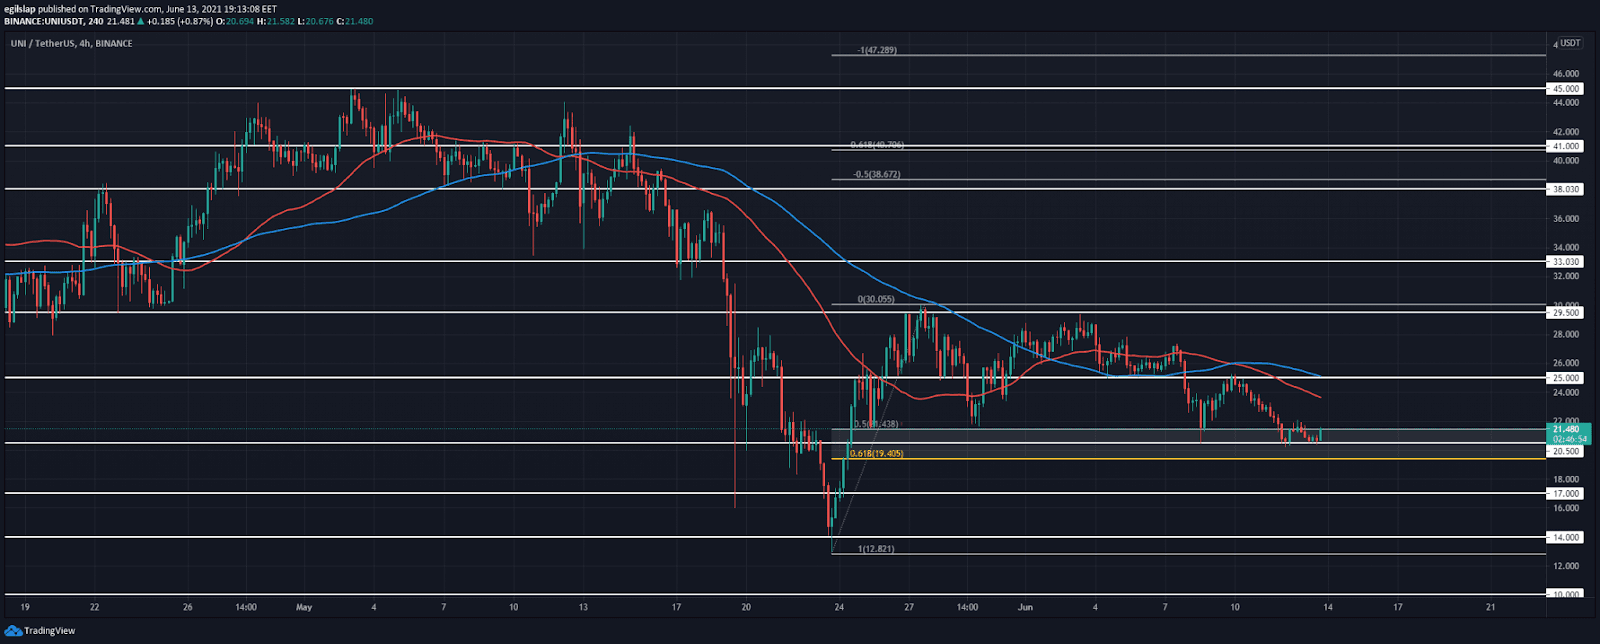 Uniswap price analysis: Uniswap retraces 50 percent from the last swing high, prepares for a several-week rally?